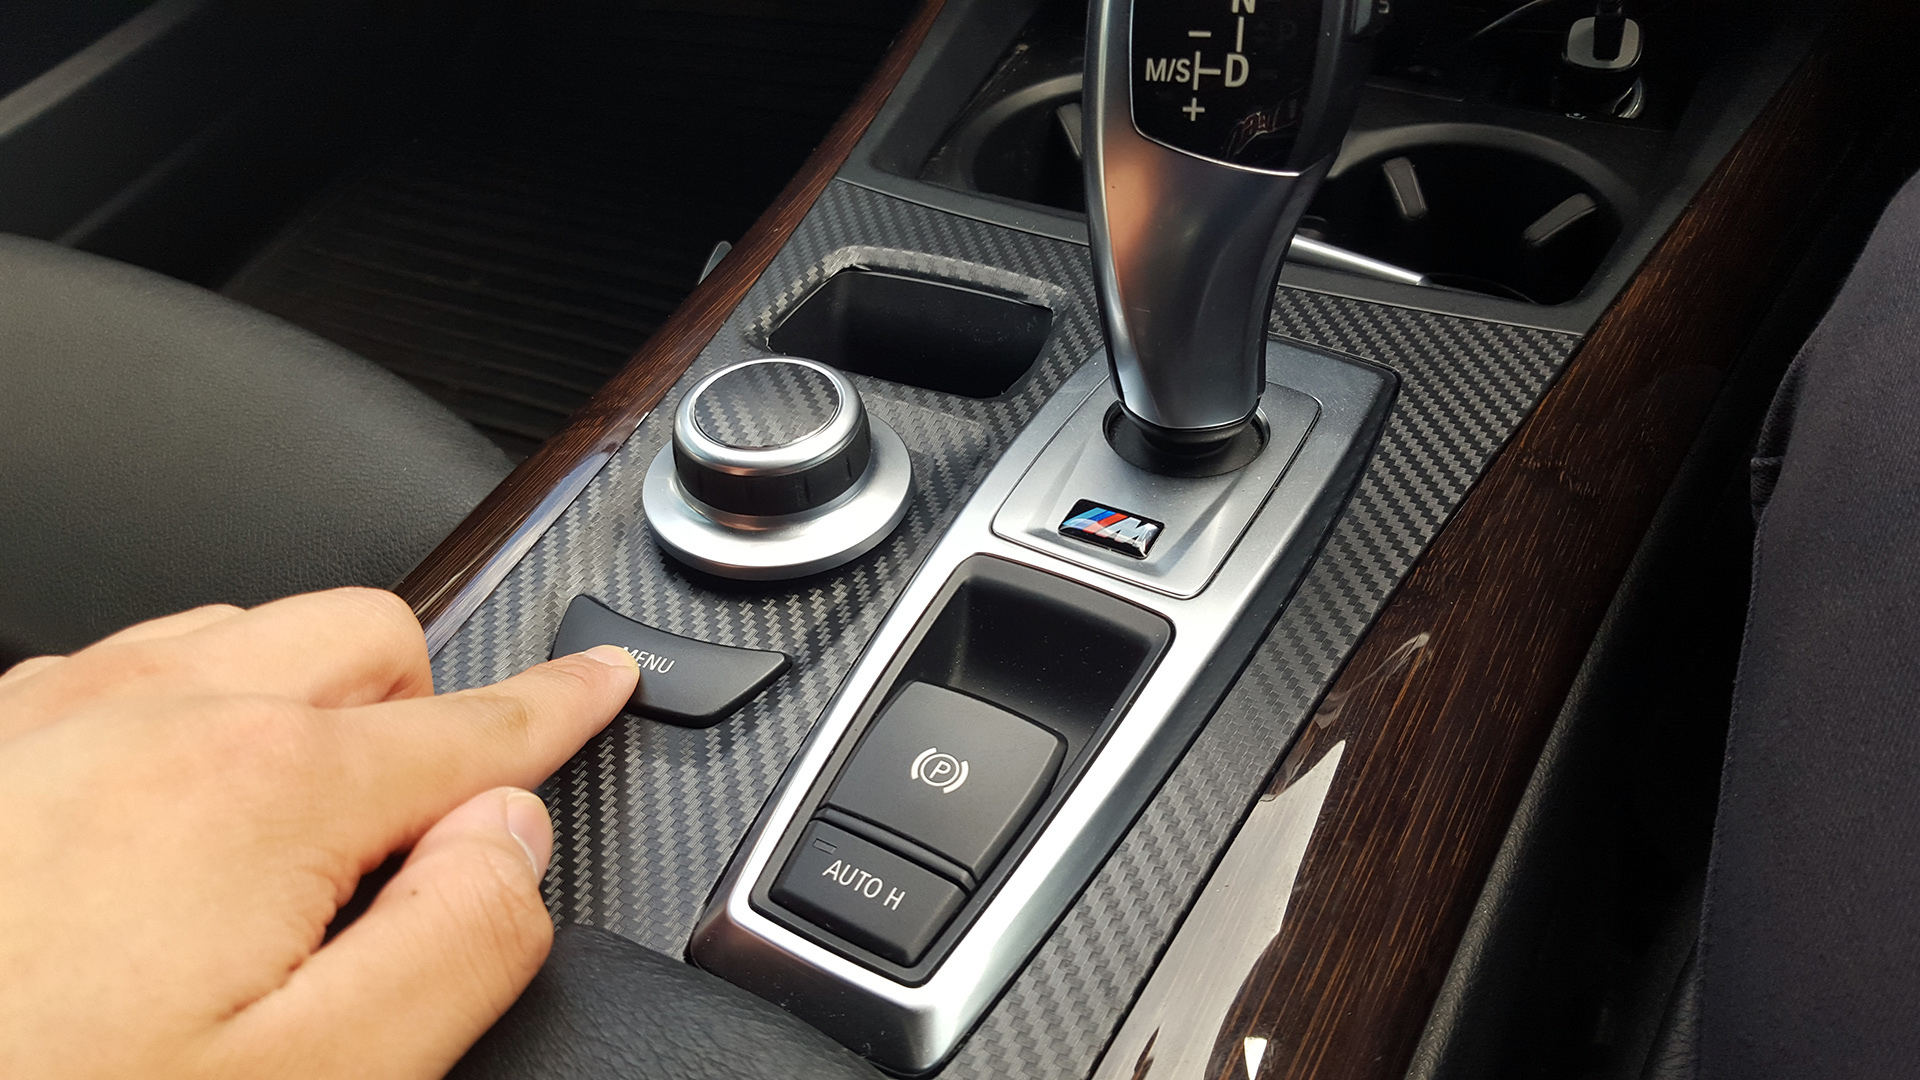 2011 2013 bmw e70 x5 cic idrive integrated android os. Black Bedroom Furniture Sets. Home Design Ideas